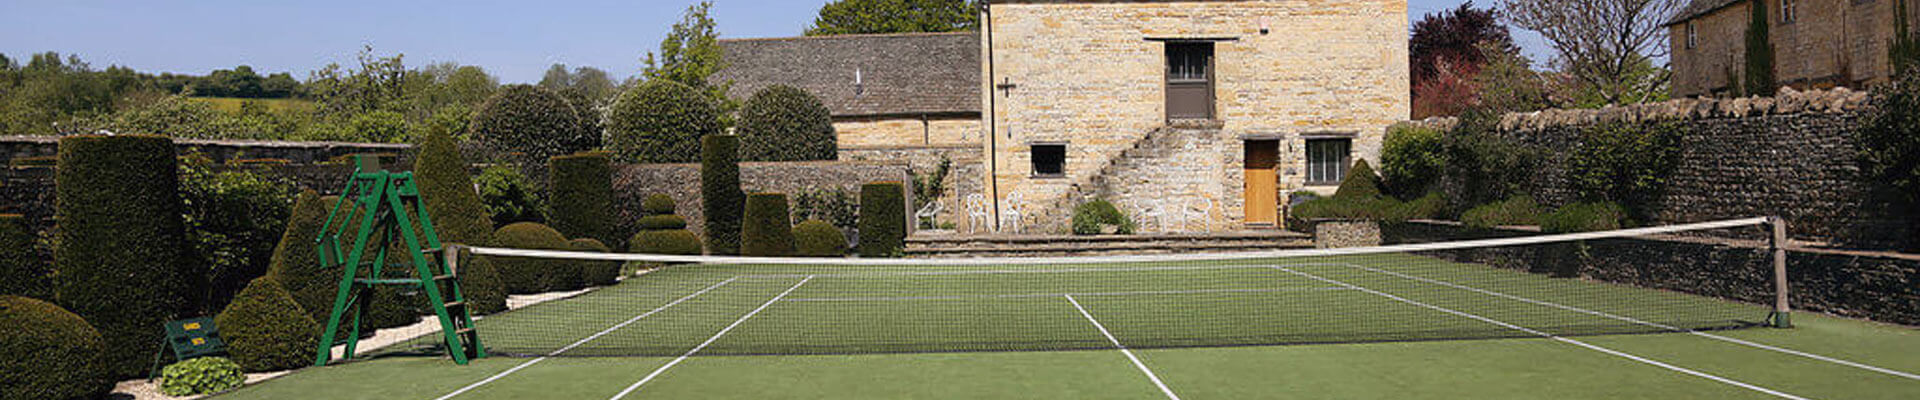 Photo of the tennis court at Temple Guiting Estate